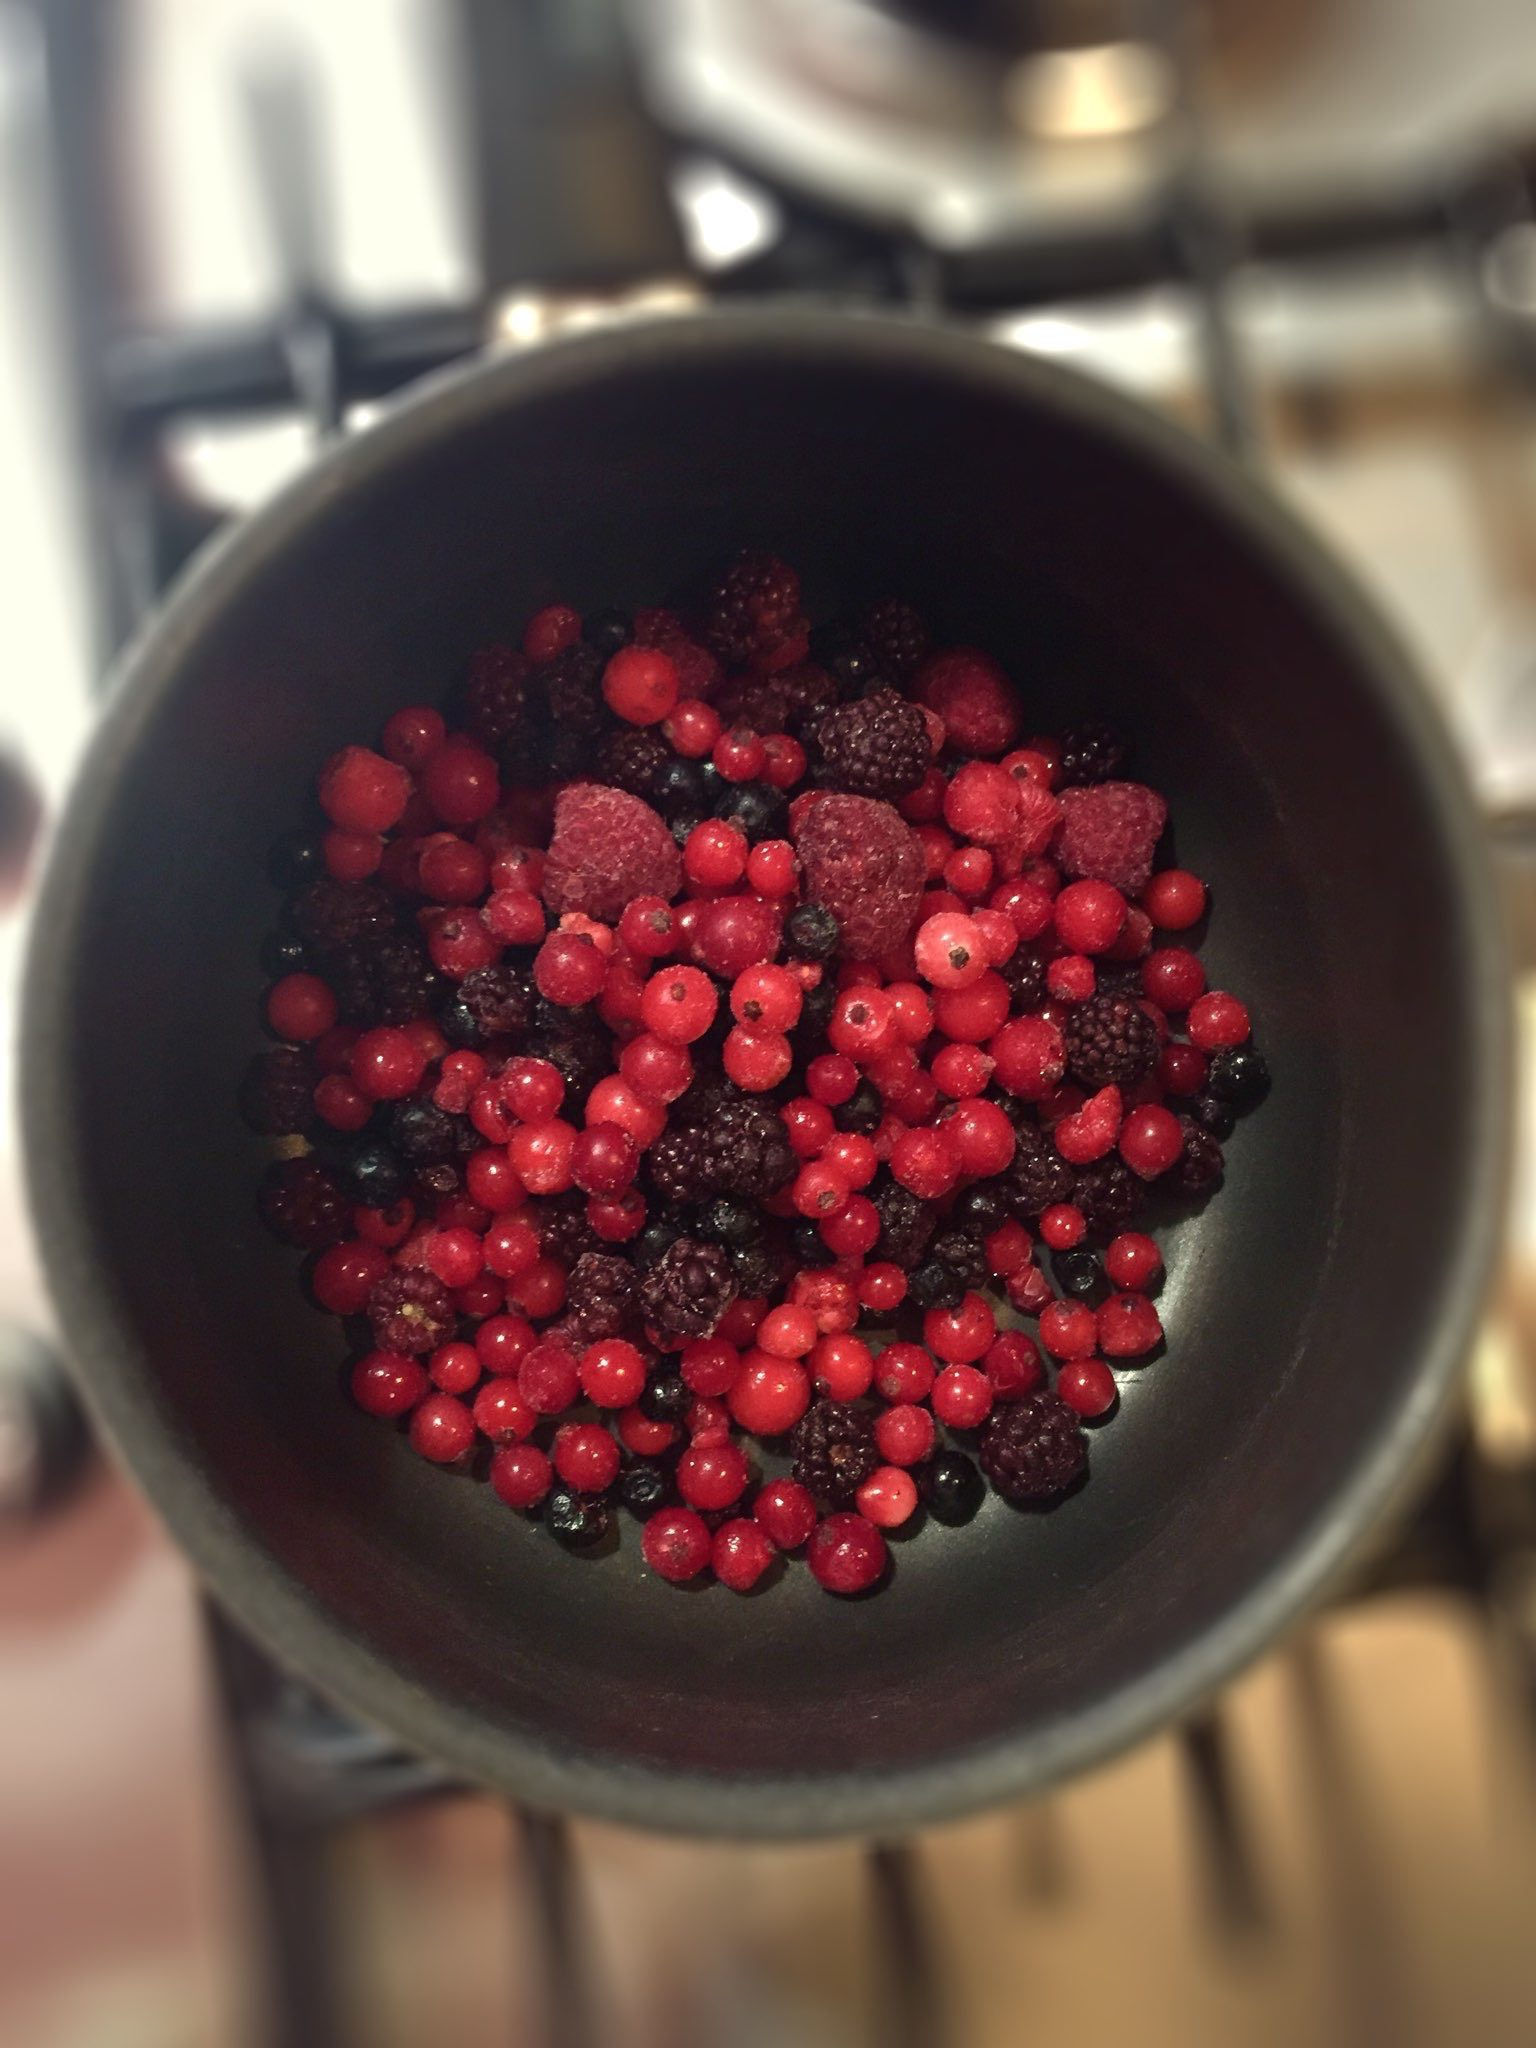 cooking berries sauce for a dessert in a glass